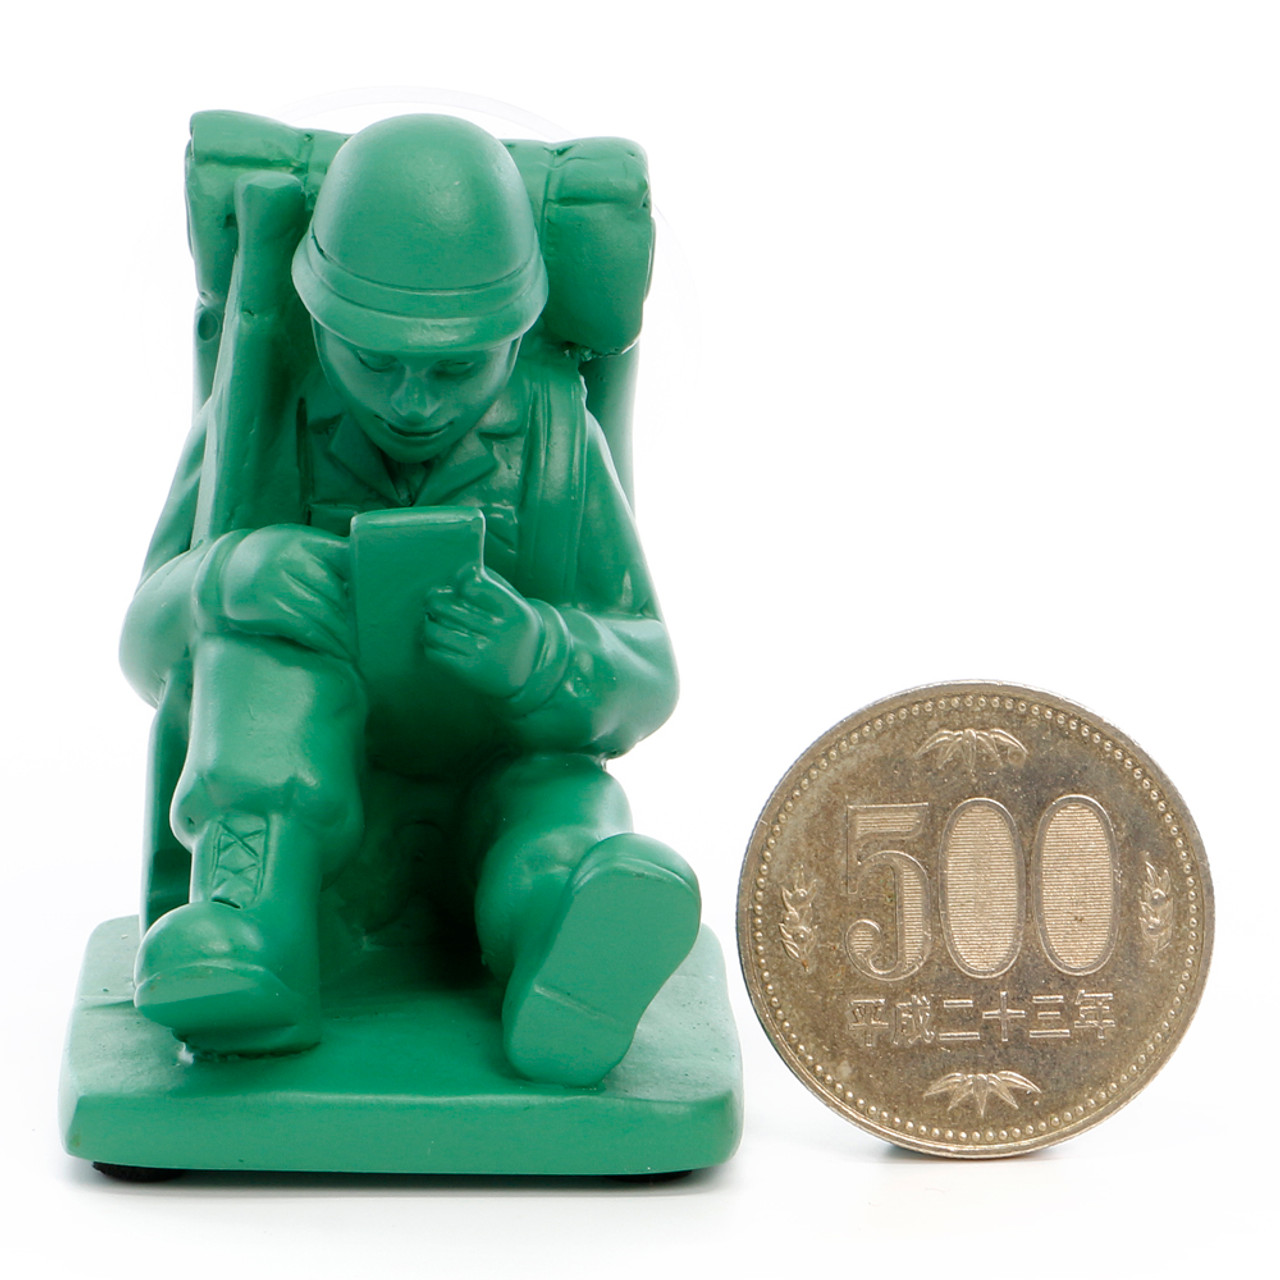 Seto Craft Motif Hand Painting Cellphone / Mobile Device Stand - Mini Soldier ( Proportion )